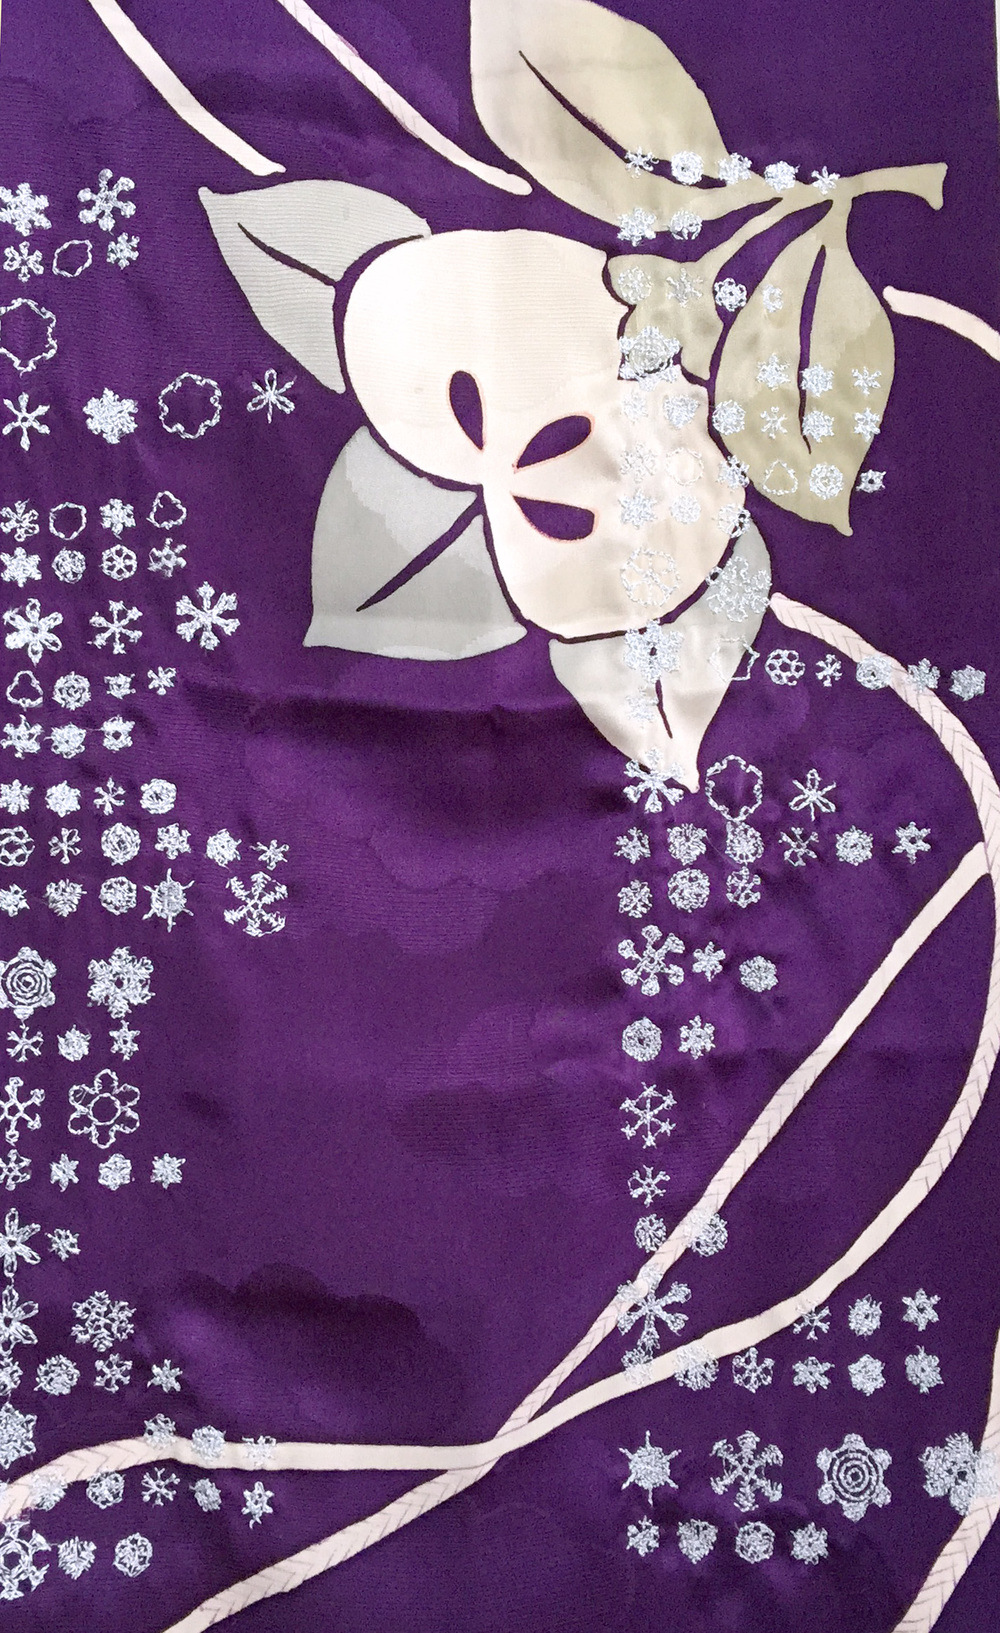 Amiko Matsuo Detail of digital embroidery of snowflake data since 1959 stitched on vintage kimono silk.